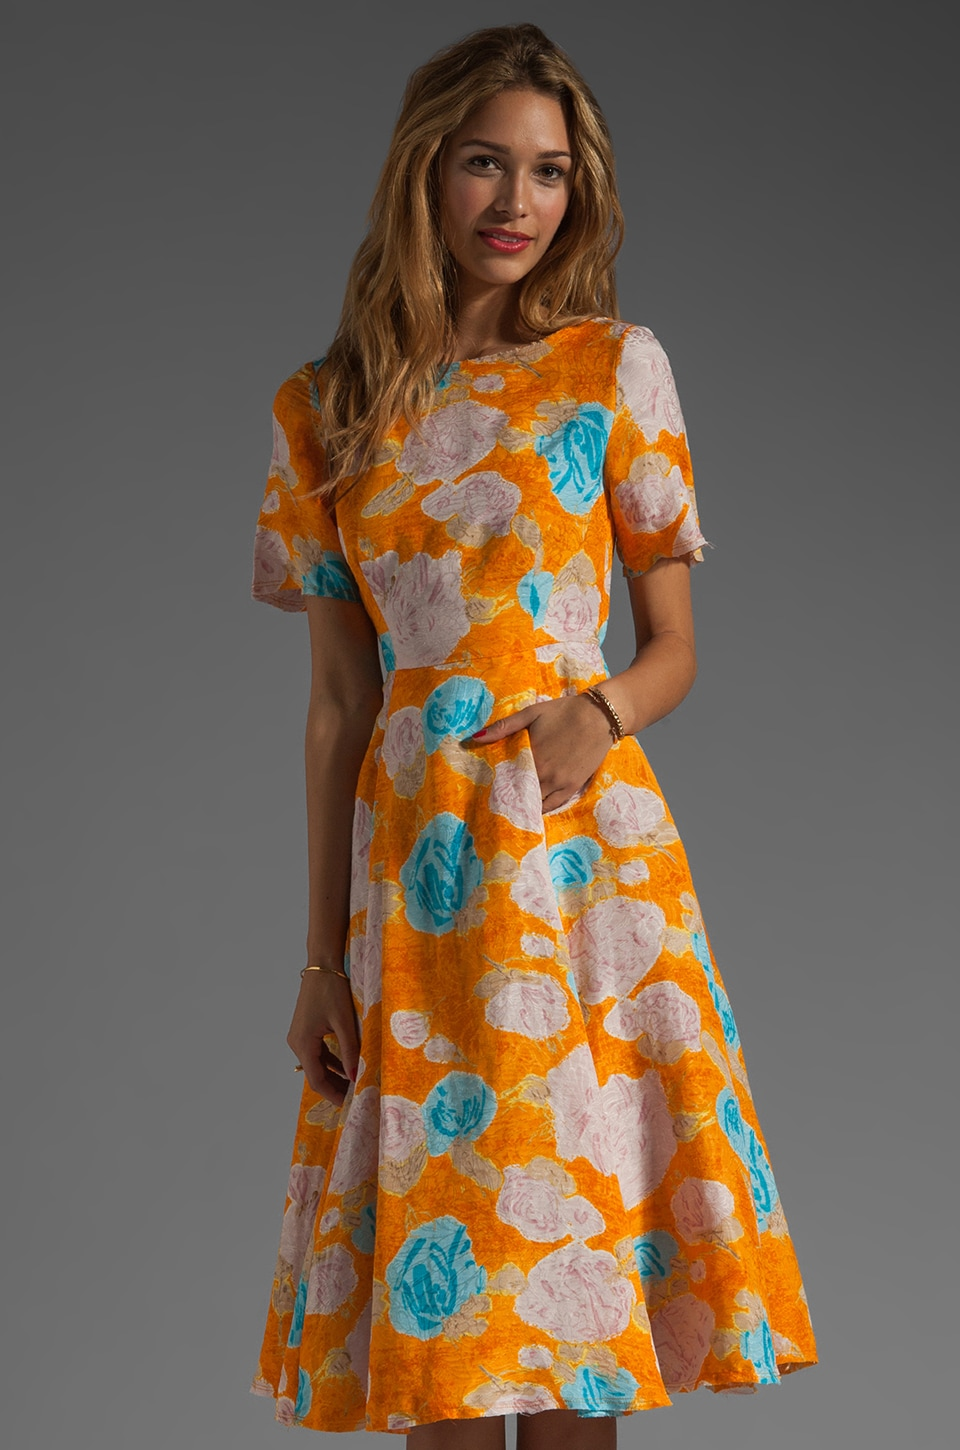 Tracy Reese Jacquard Deconstructed Frock in Floral